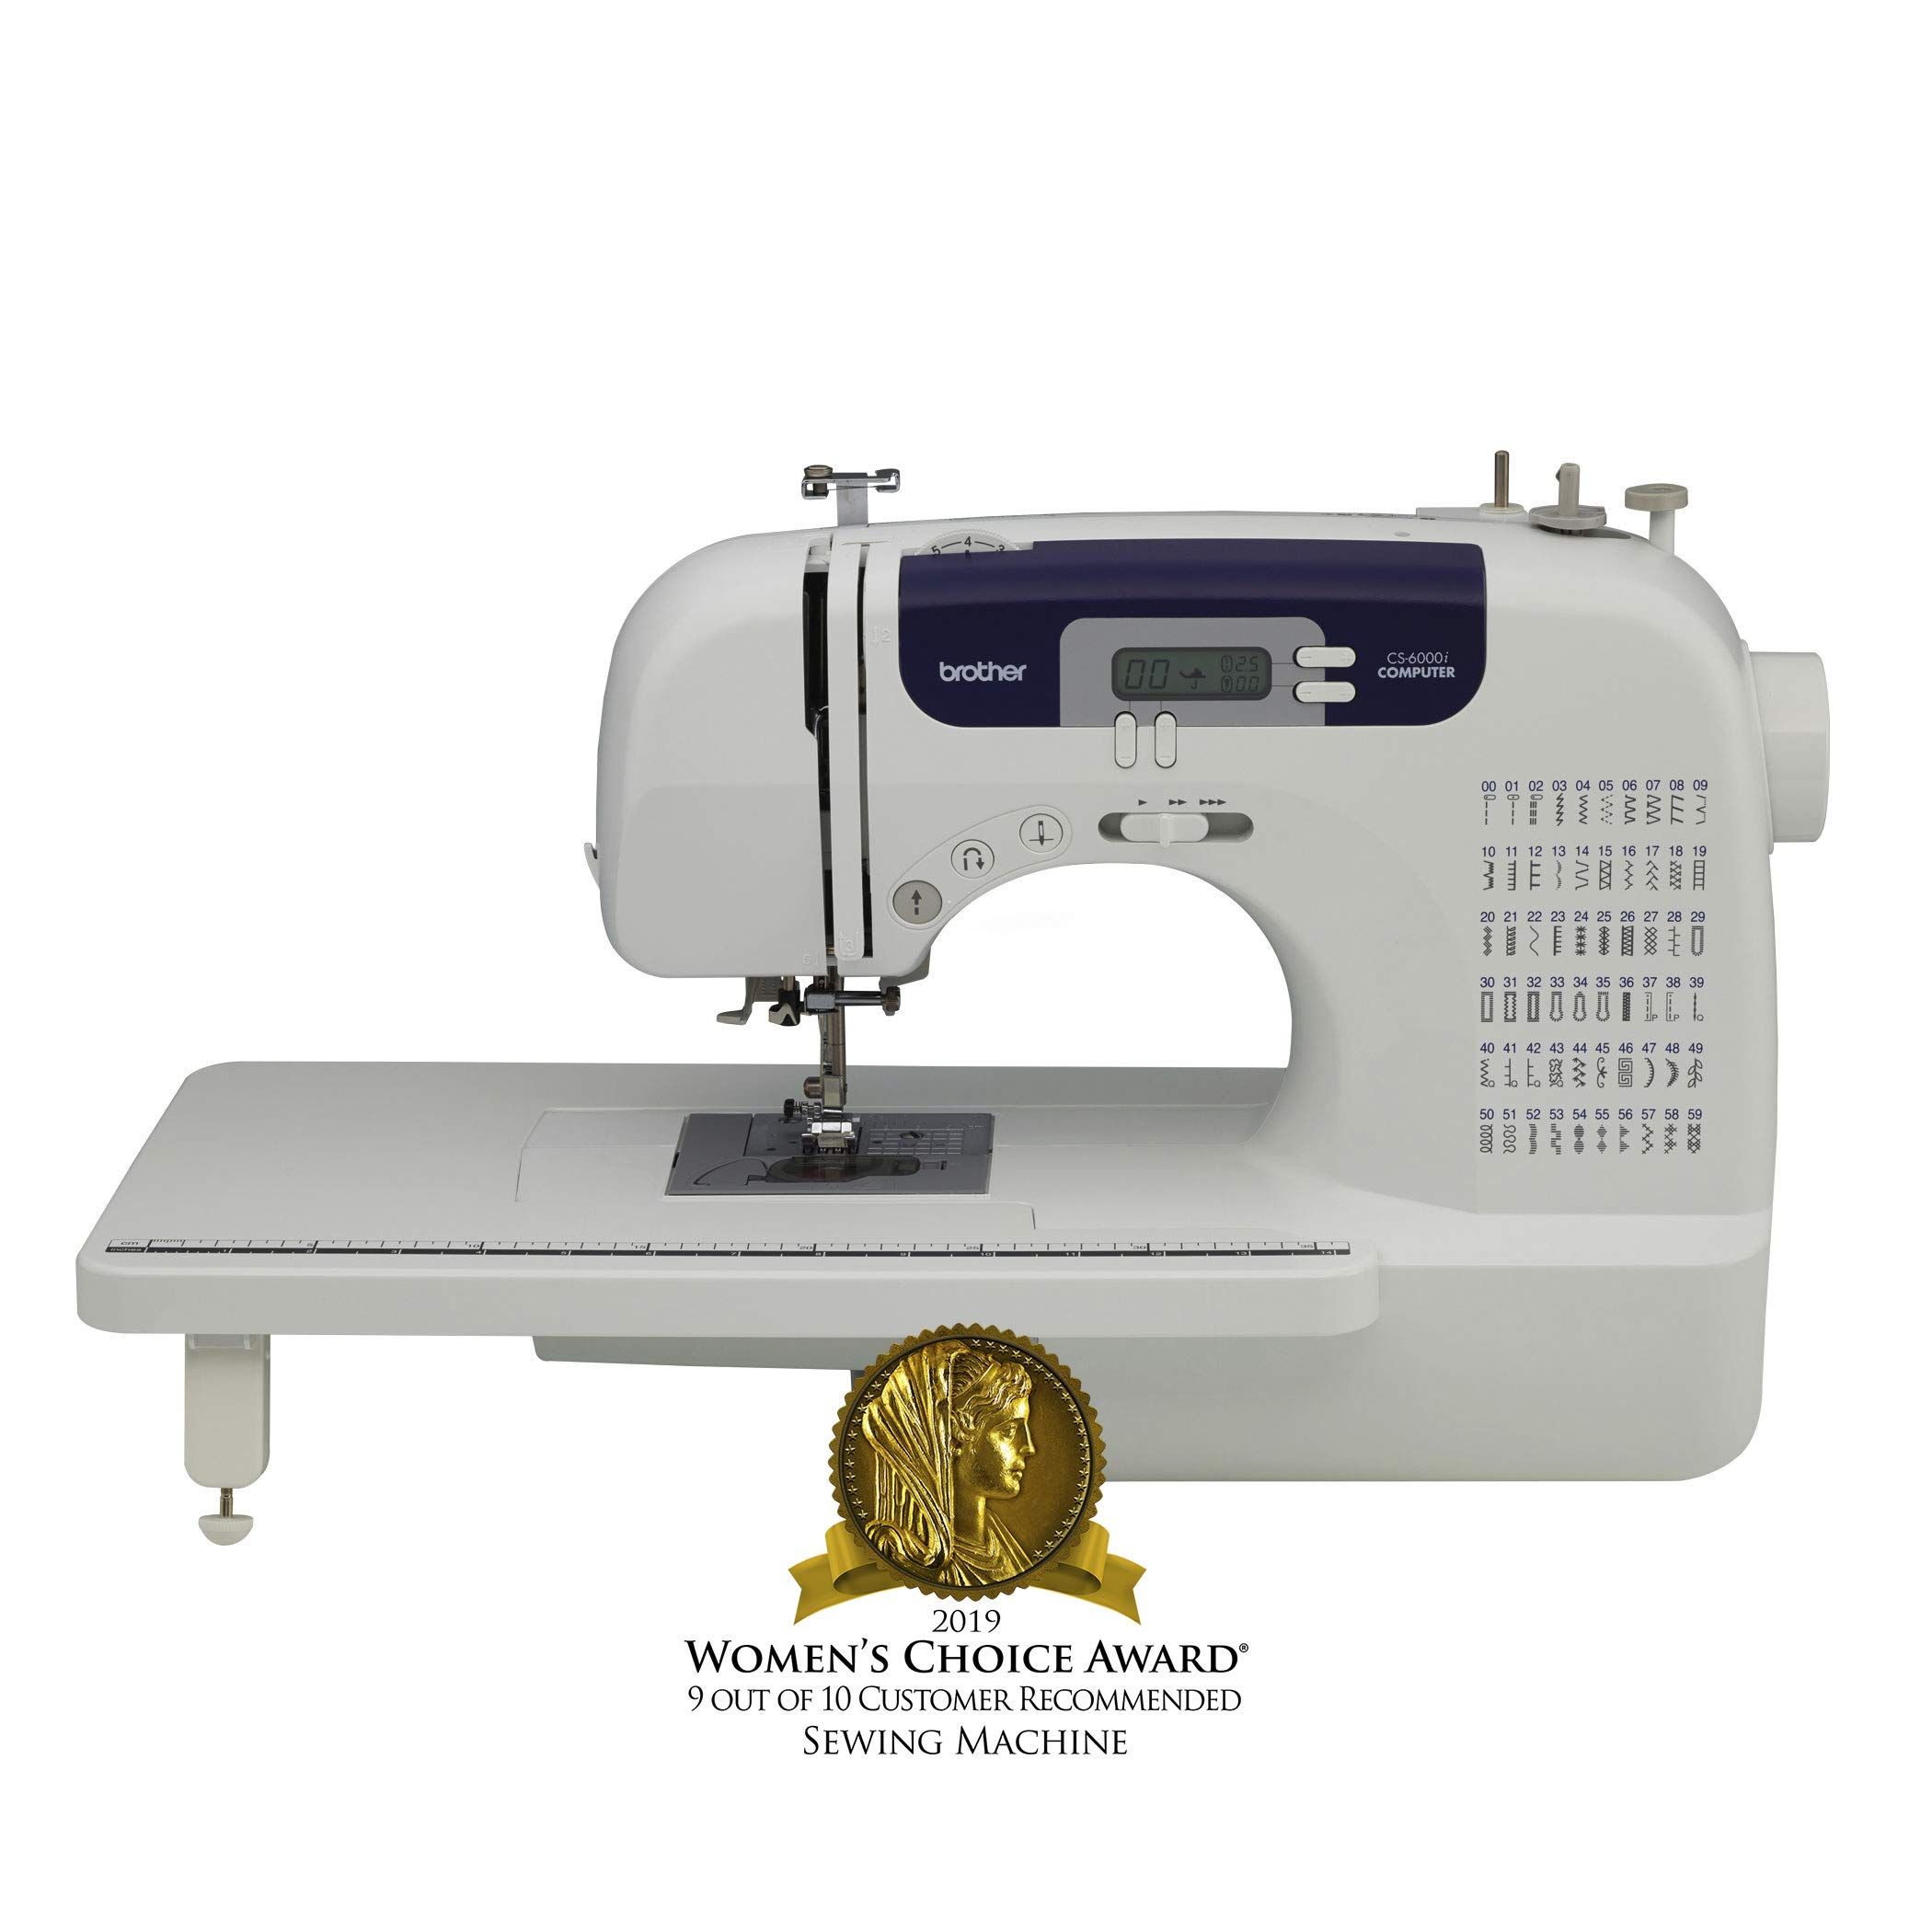 Brother Sewing and Quilting Machine, CS6000i, 60 Built-In Stitches, 7 styles of 1-Step Auto-Size Buttonholes, Wide Table, Hard Cover, LCD Display and Auto Needle Threader by Brother